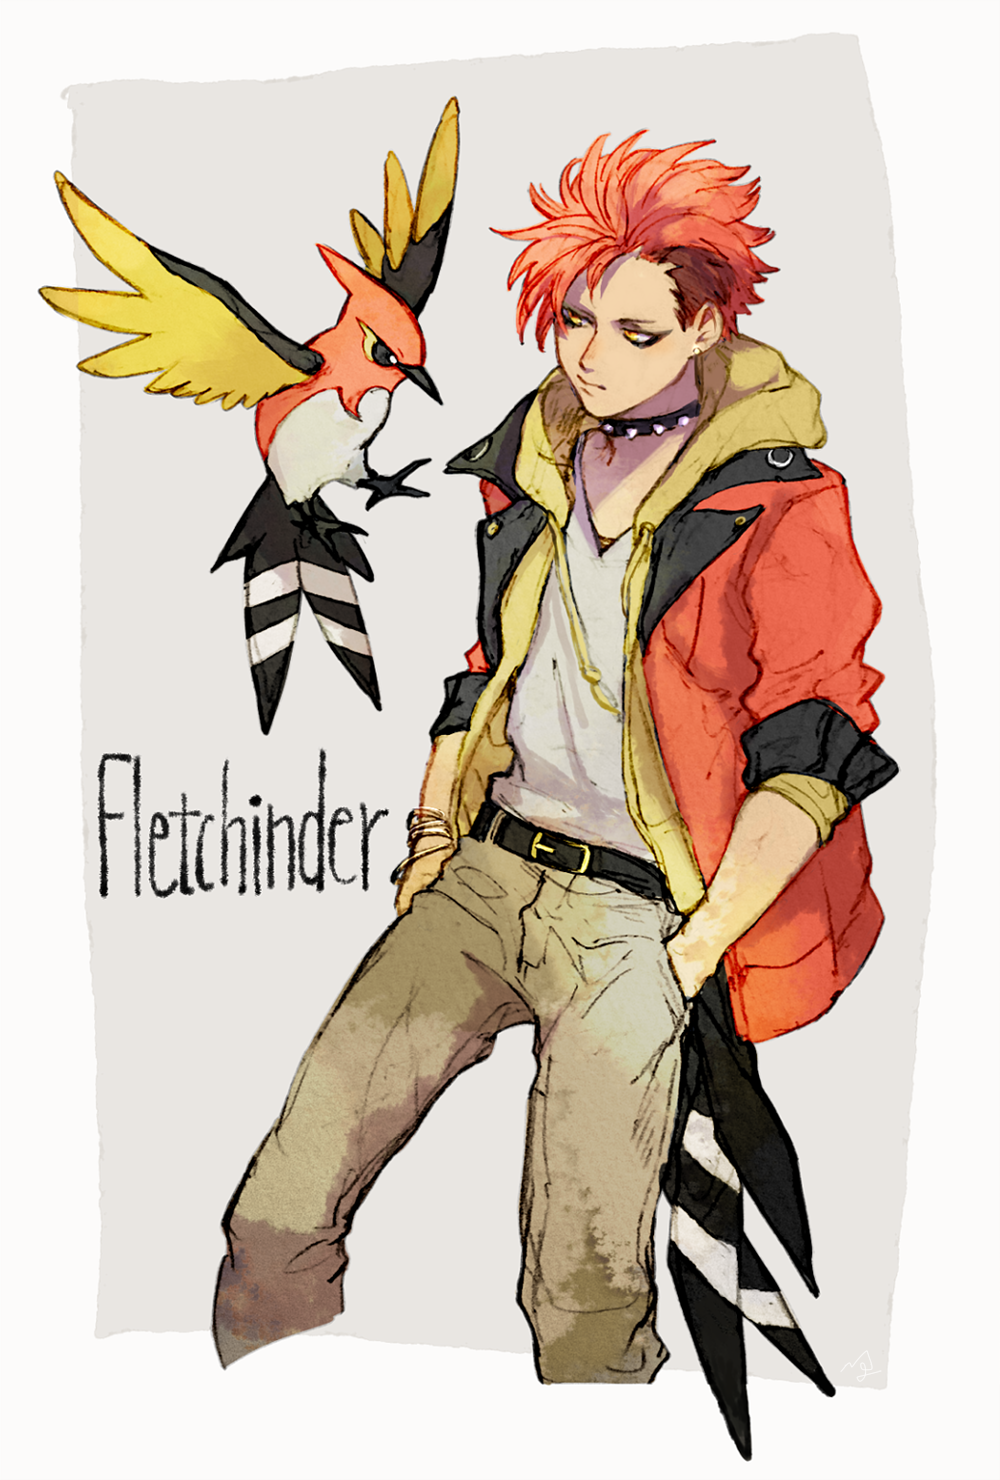 1boy bangle belt bracelet character_name collar earrings eyeliner fletchinder gen_6_pokemon hands_in_pockets highres hood hood_down jacket jewelry makeup male_focus moemon multicolored_hair ngr_(nnn204204) orange_hair orange_jacket pants personification pokemon pokemon_(creature) redhead shirt solo spiked_collar spikes standing stud_earrings two-tone_hair white_shirt yellow_eyes